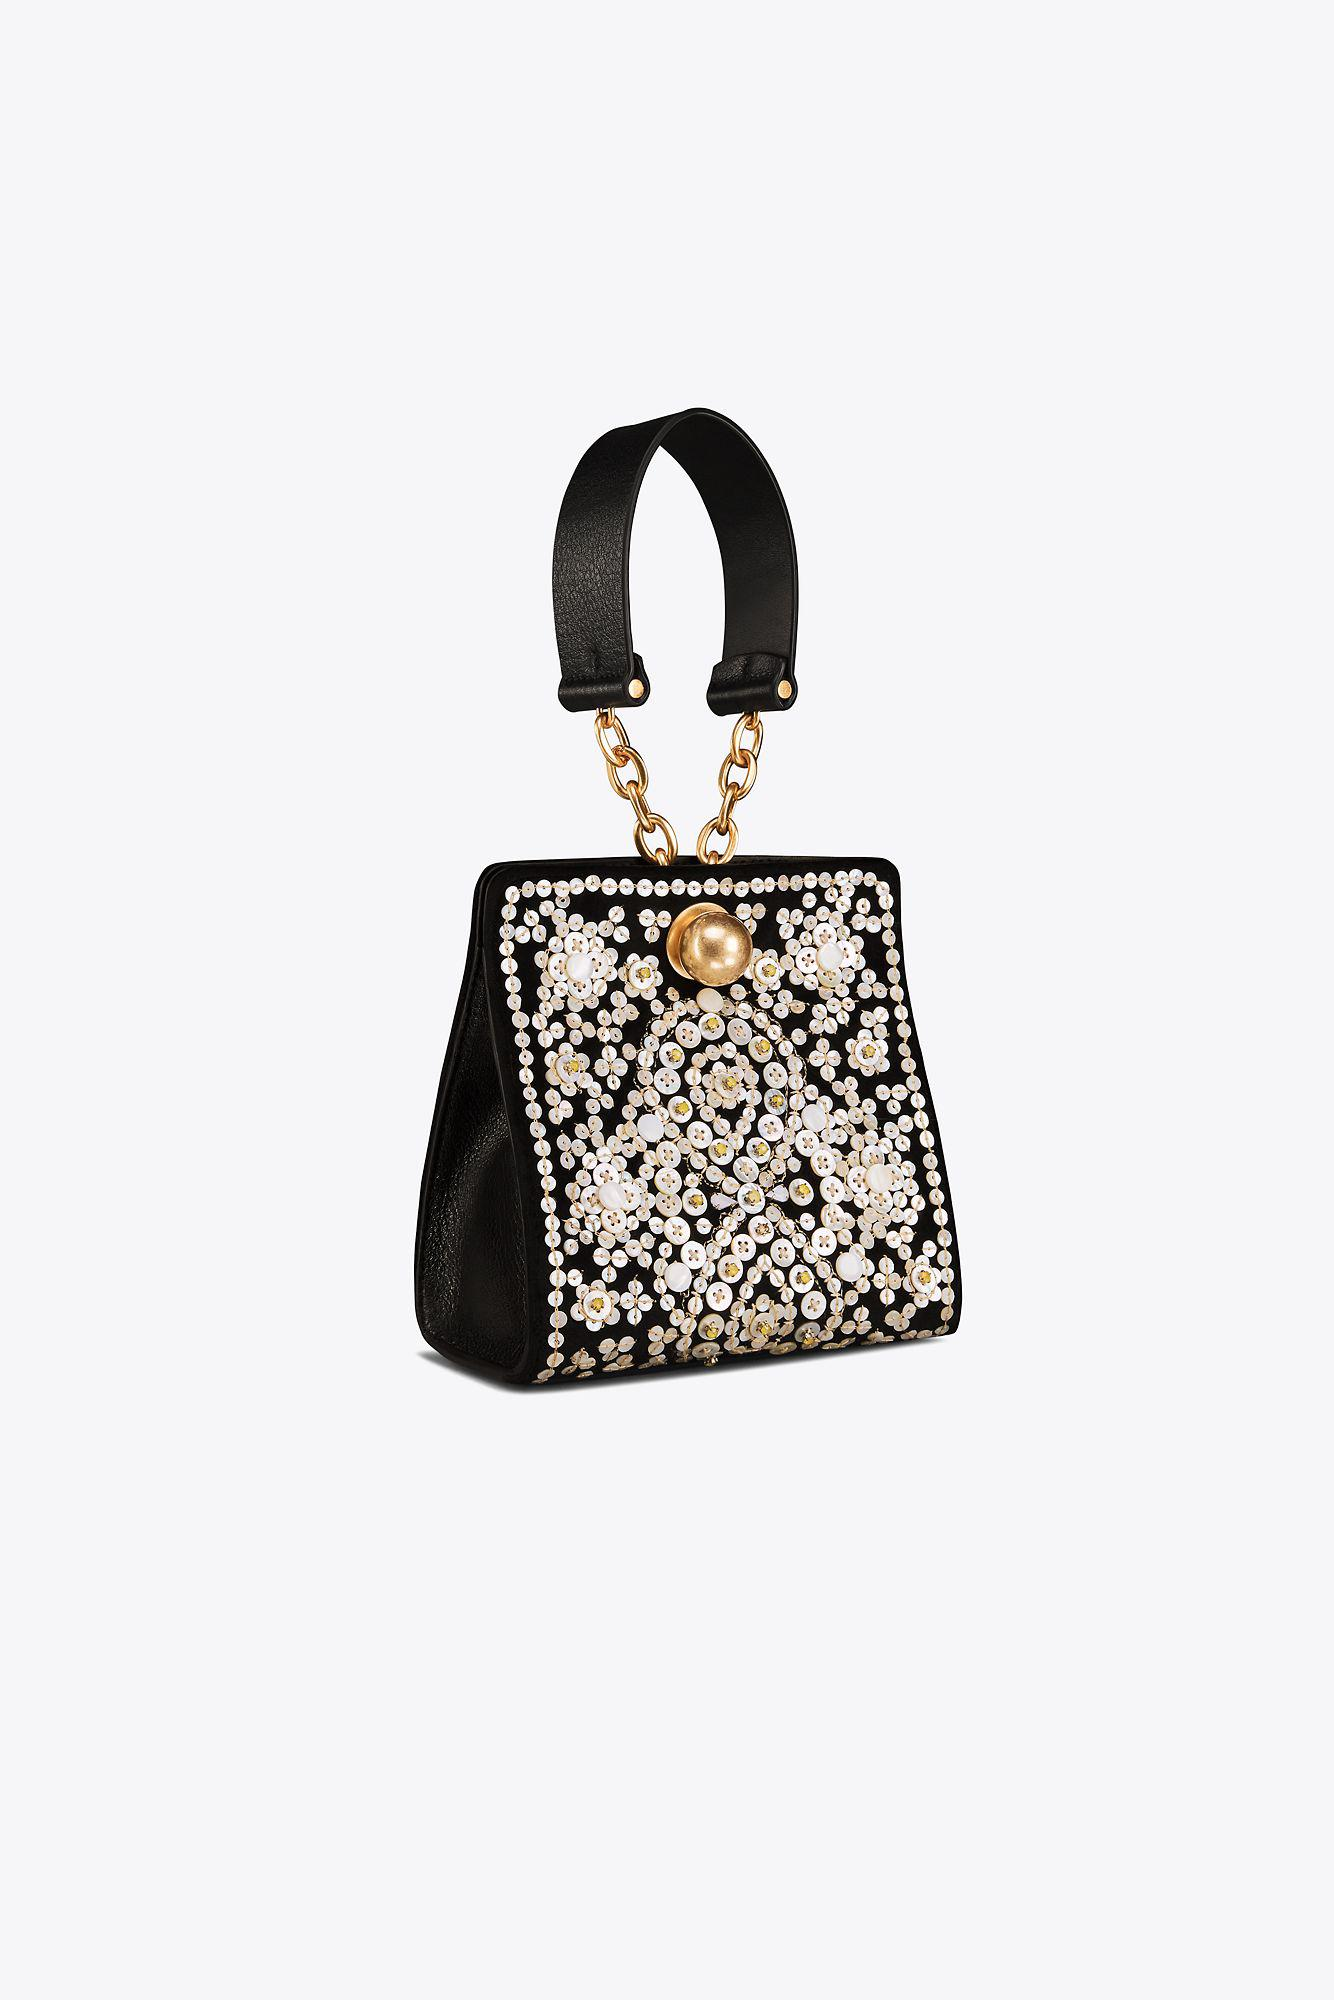 5ff7bfd5e09d Lyst - Tory Burch Darcy Embellished Clutch in Black